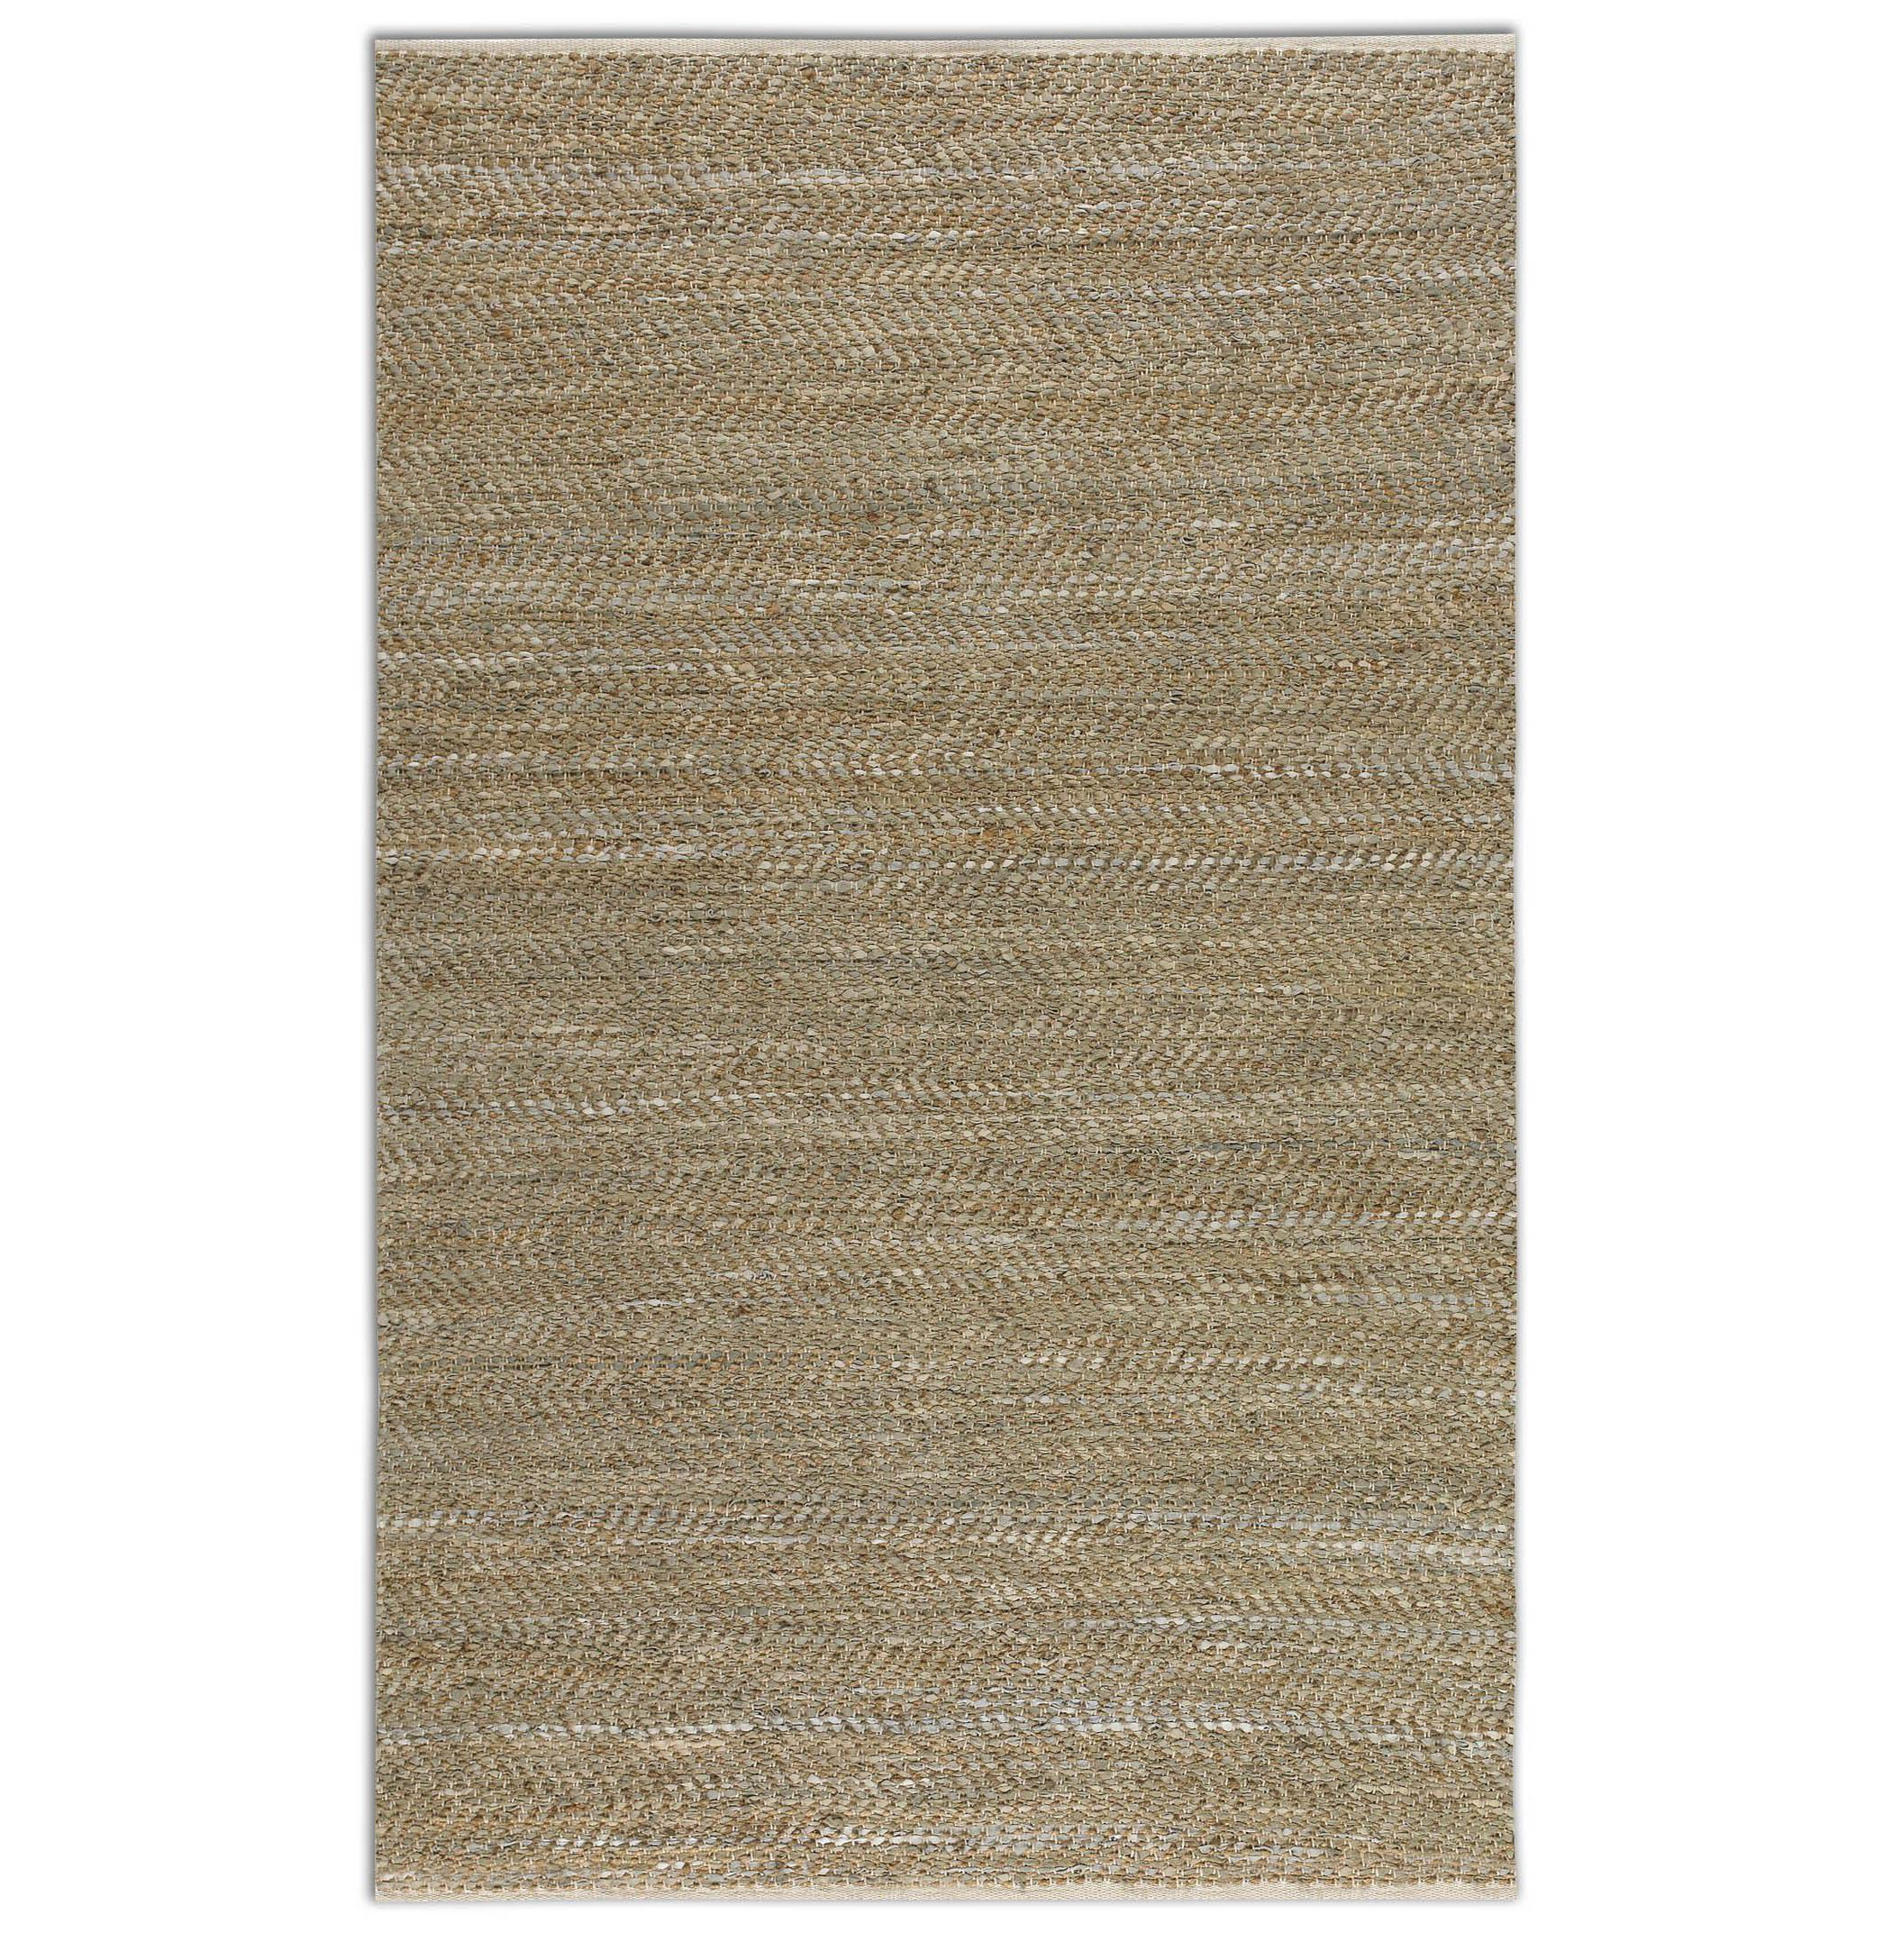 Uttermost Rugs Tobais 8 X 10 Rug - Beige - Item Number: 73052-8